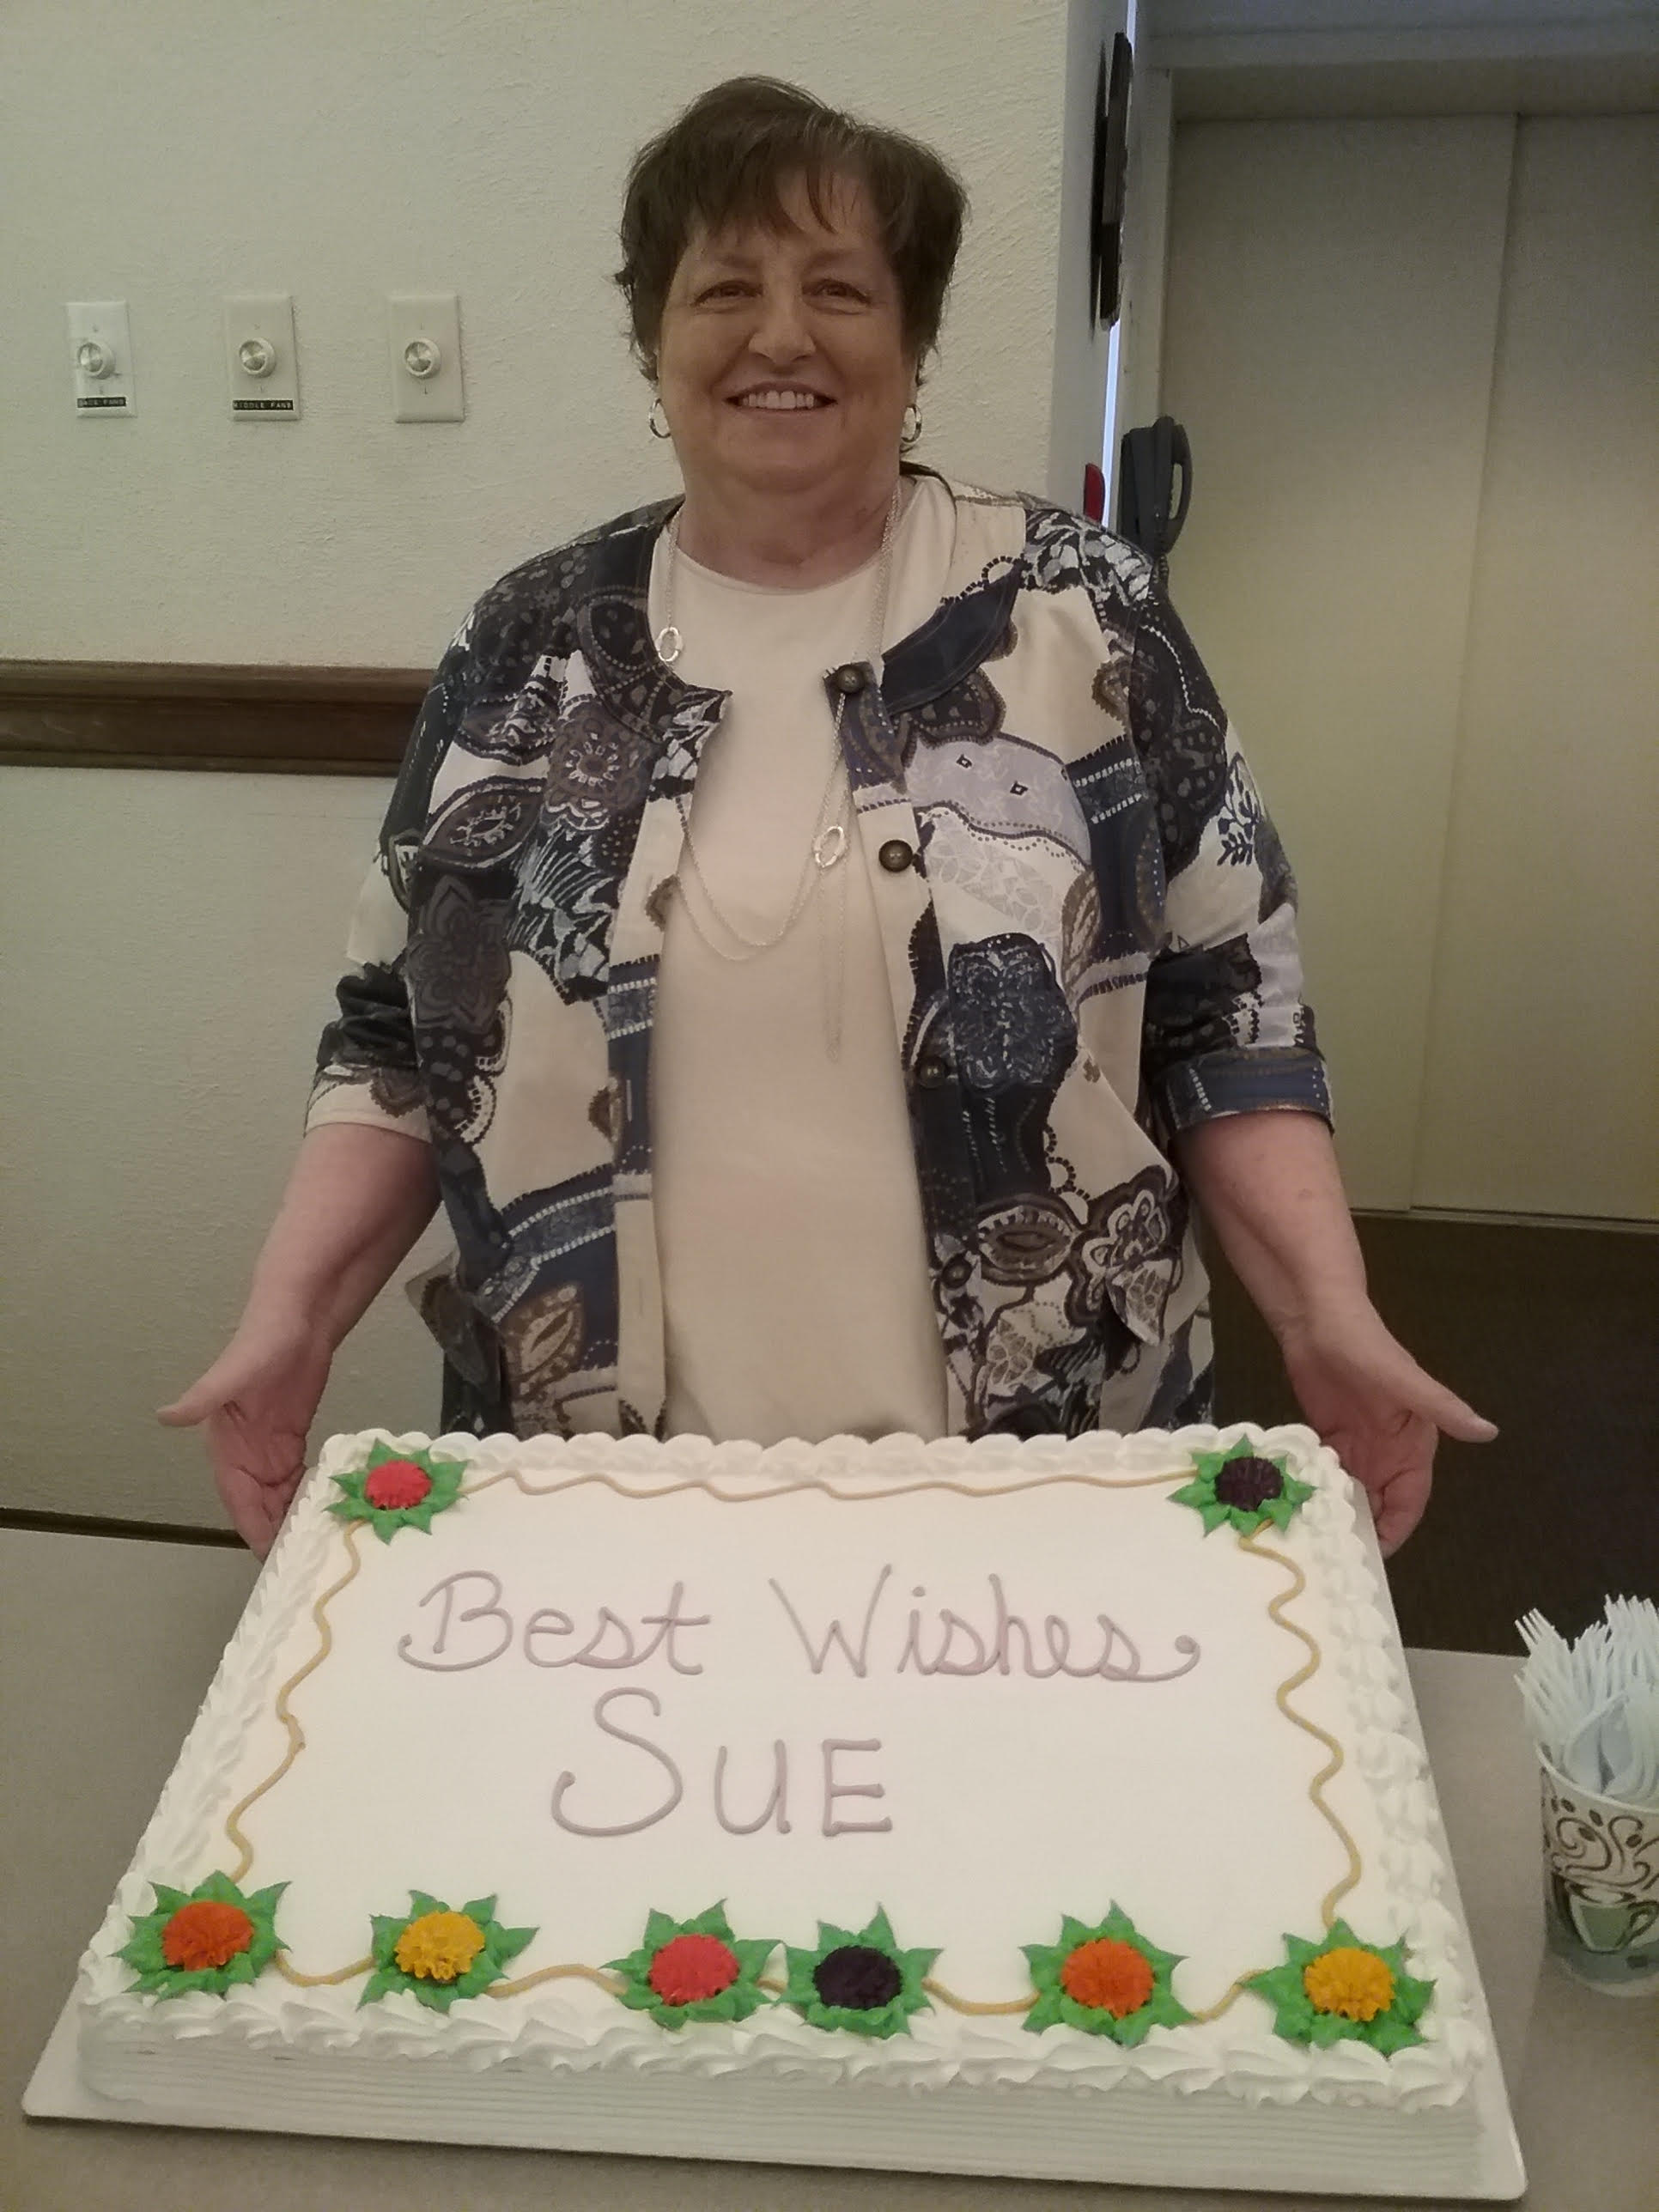 farewell to Sue